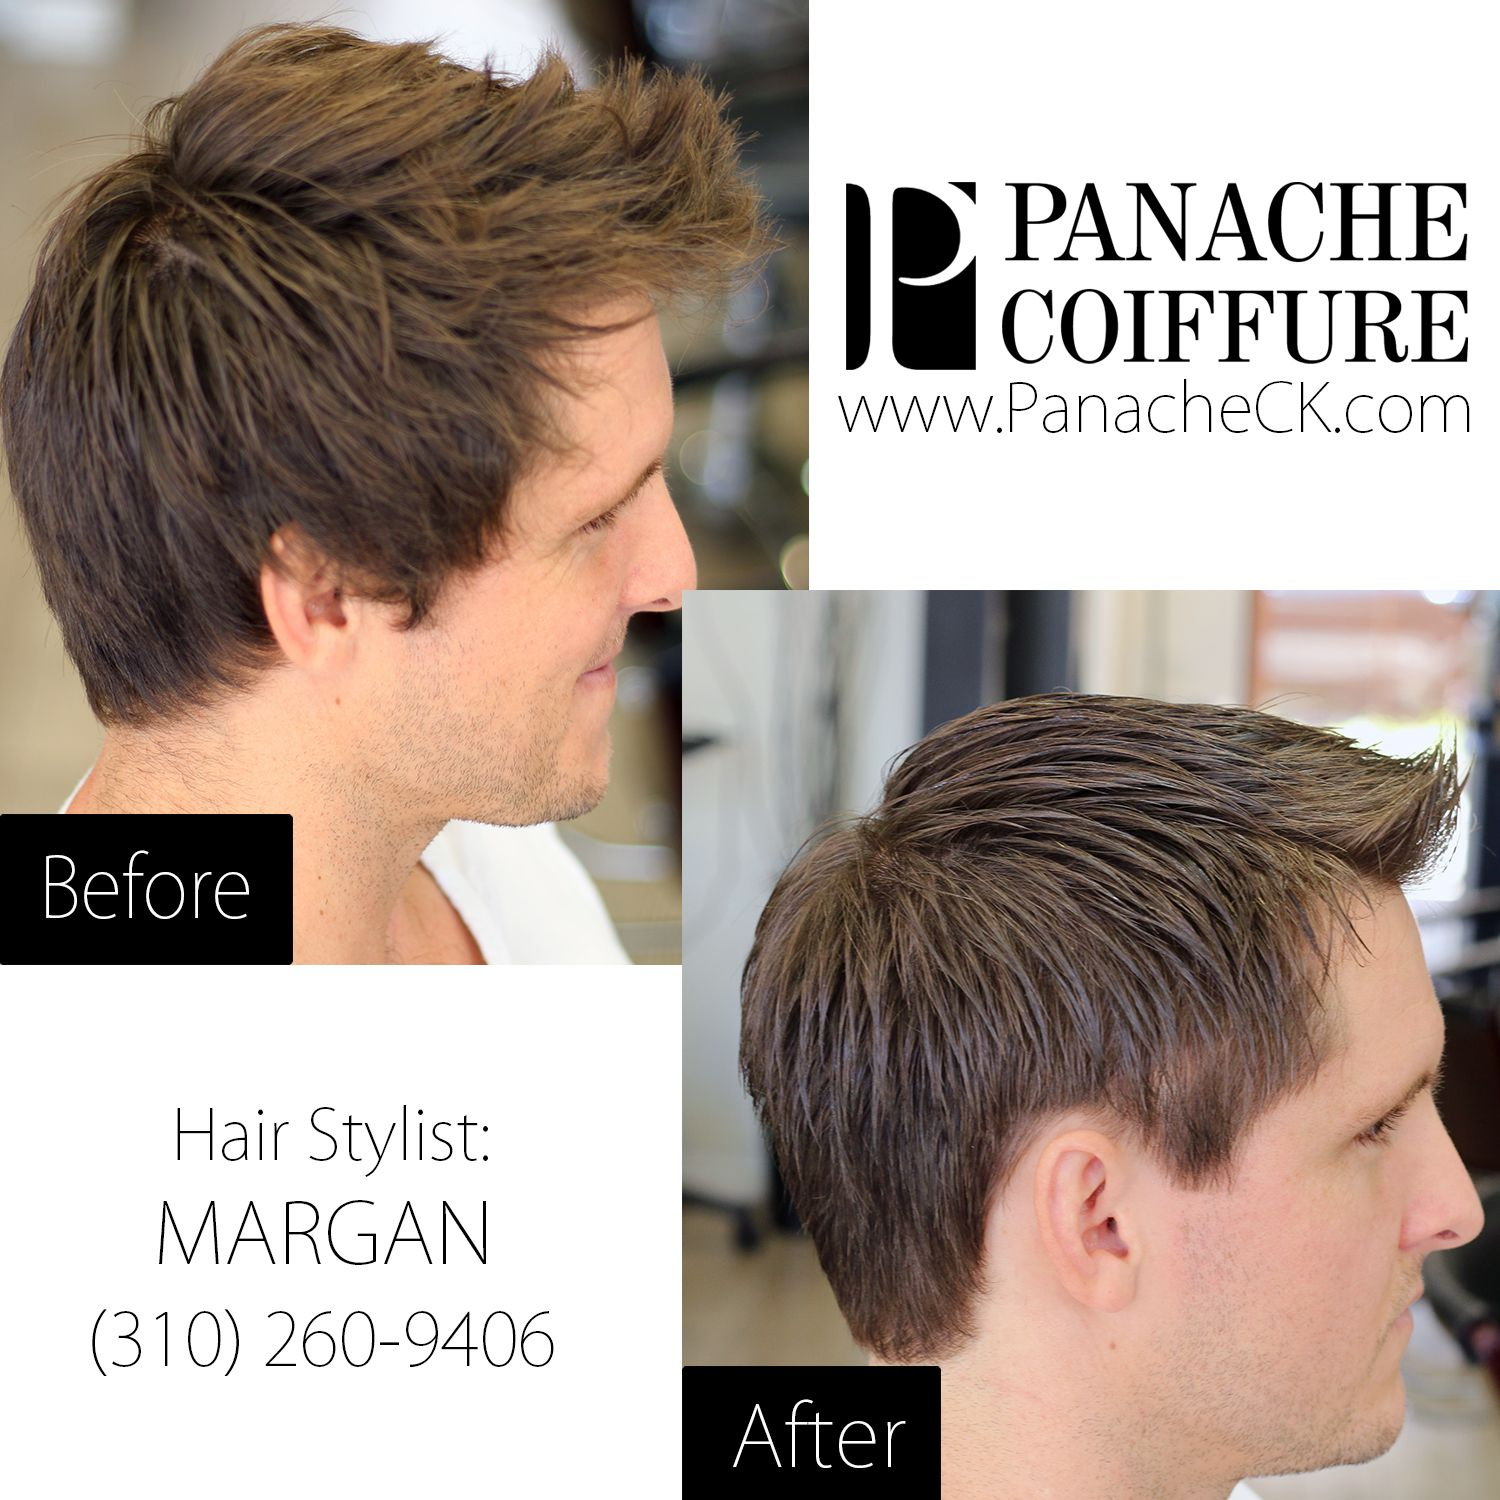 Panache-coifure-hair-salon-before-and-after-3-santa-monica-hair-salon-mens-salon-compressor.jpg